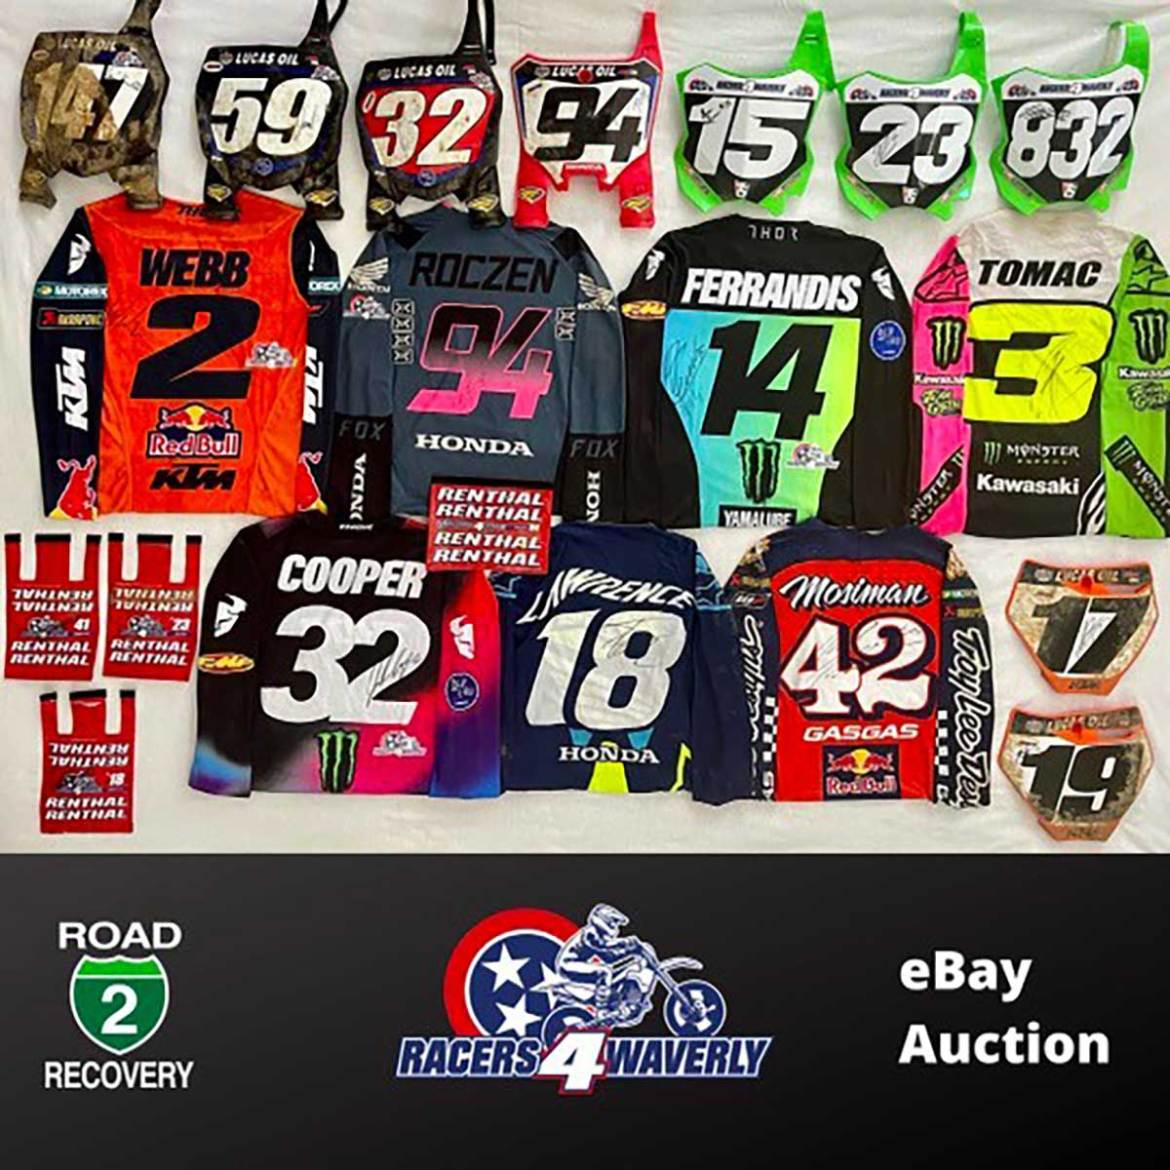 Auction to Benefit Waverly Flood Victims